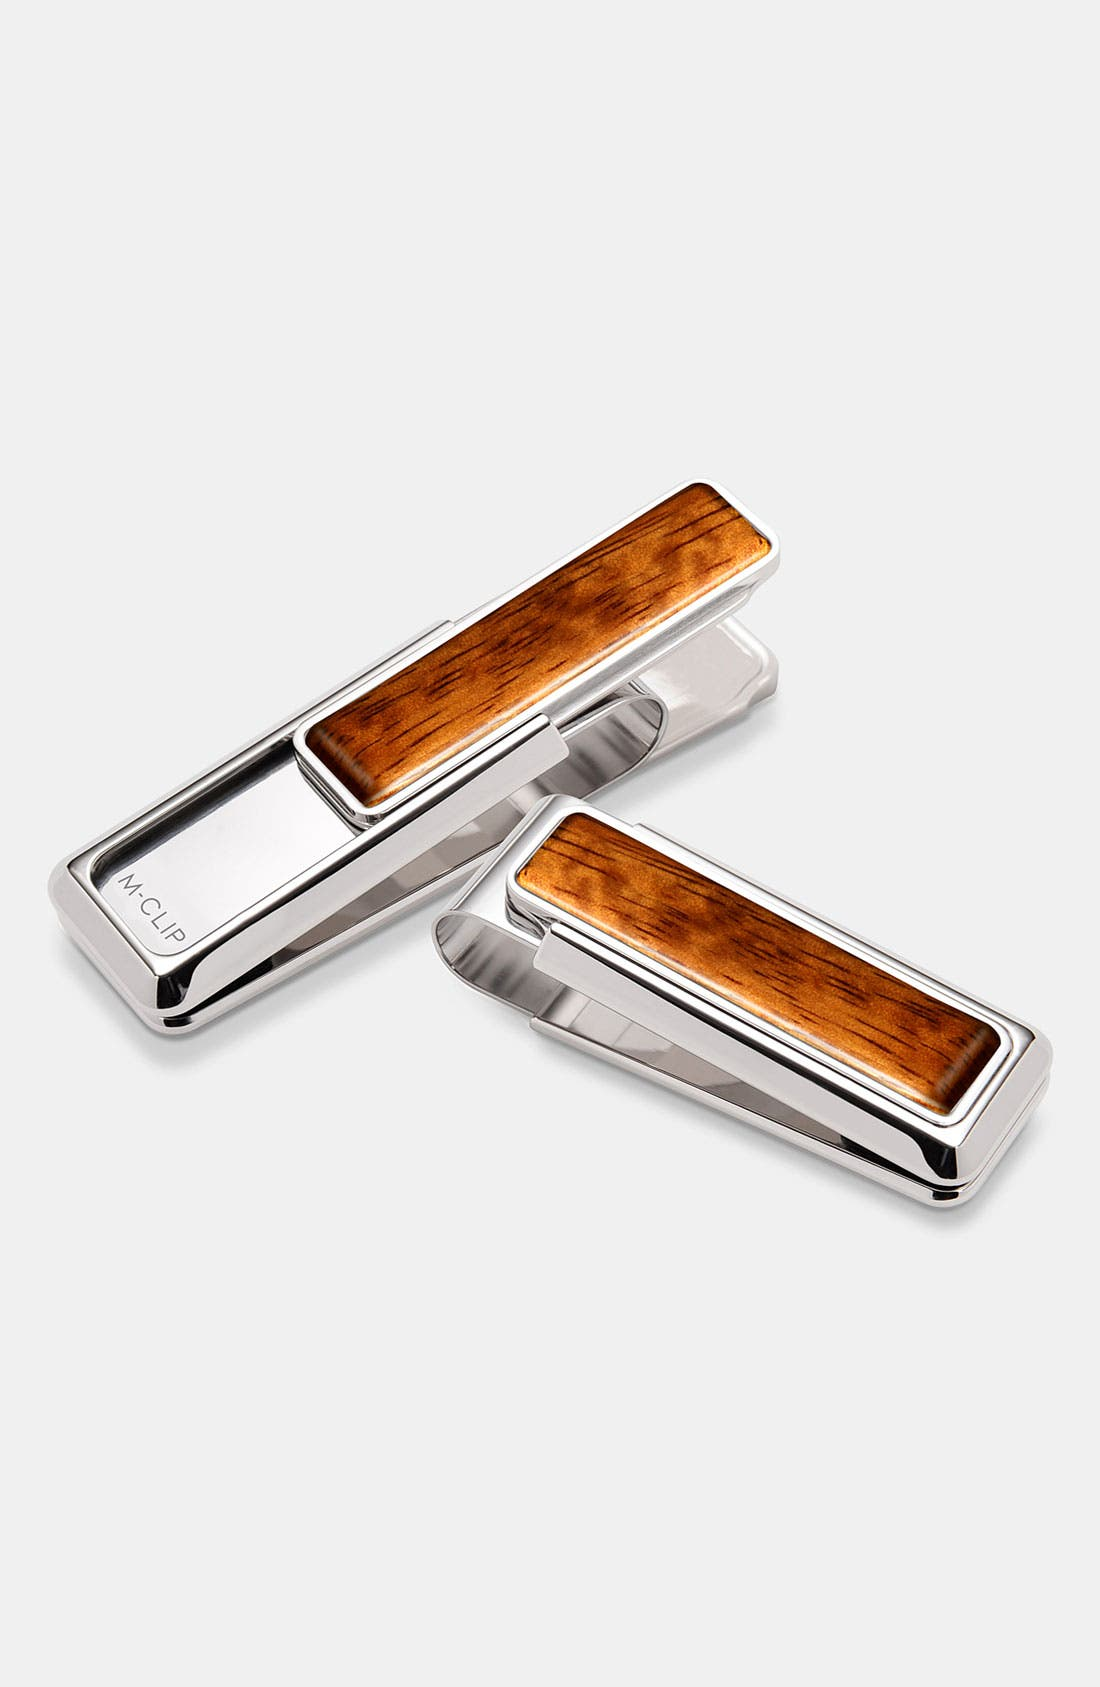 Main Image - M-Clip® Wood Inlay Money Clip